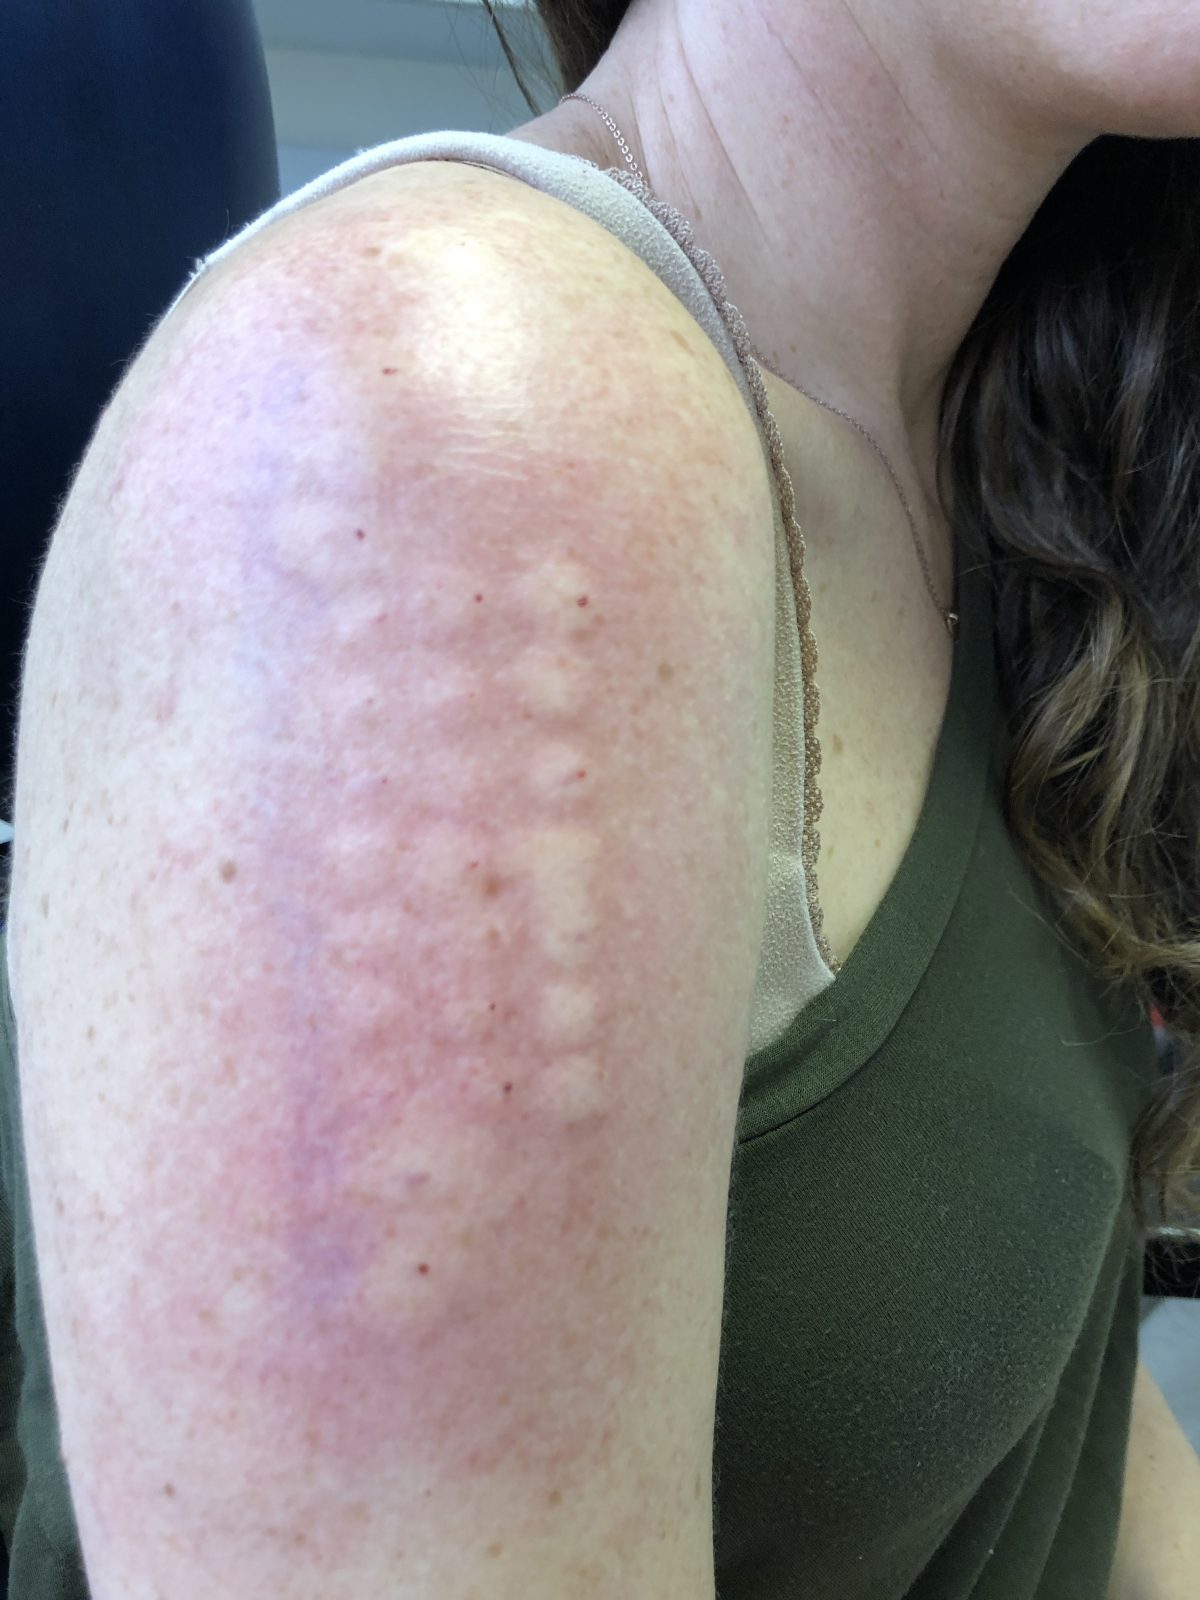 Allergy Testing Results on an Arm